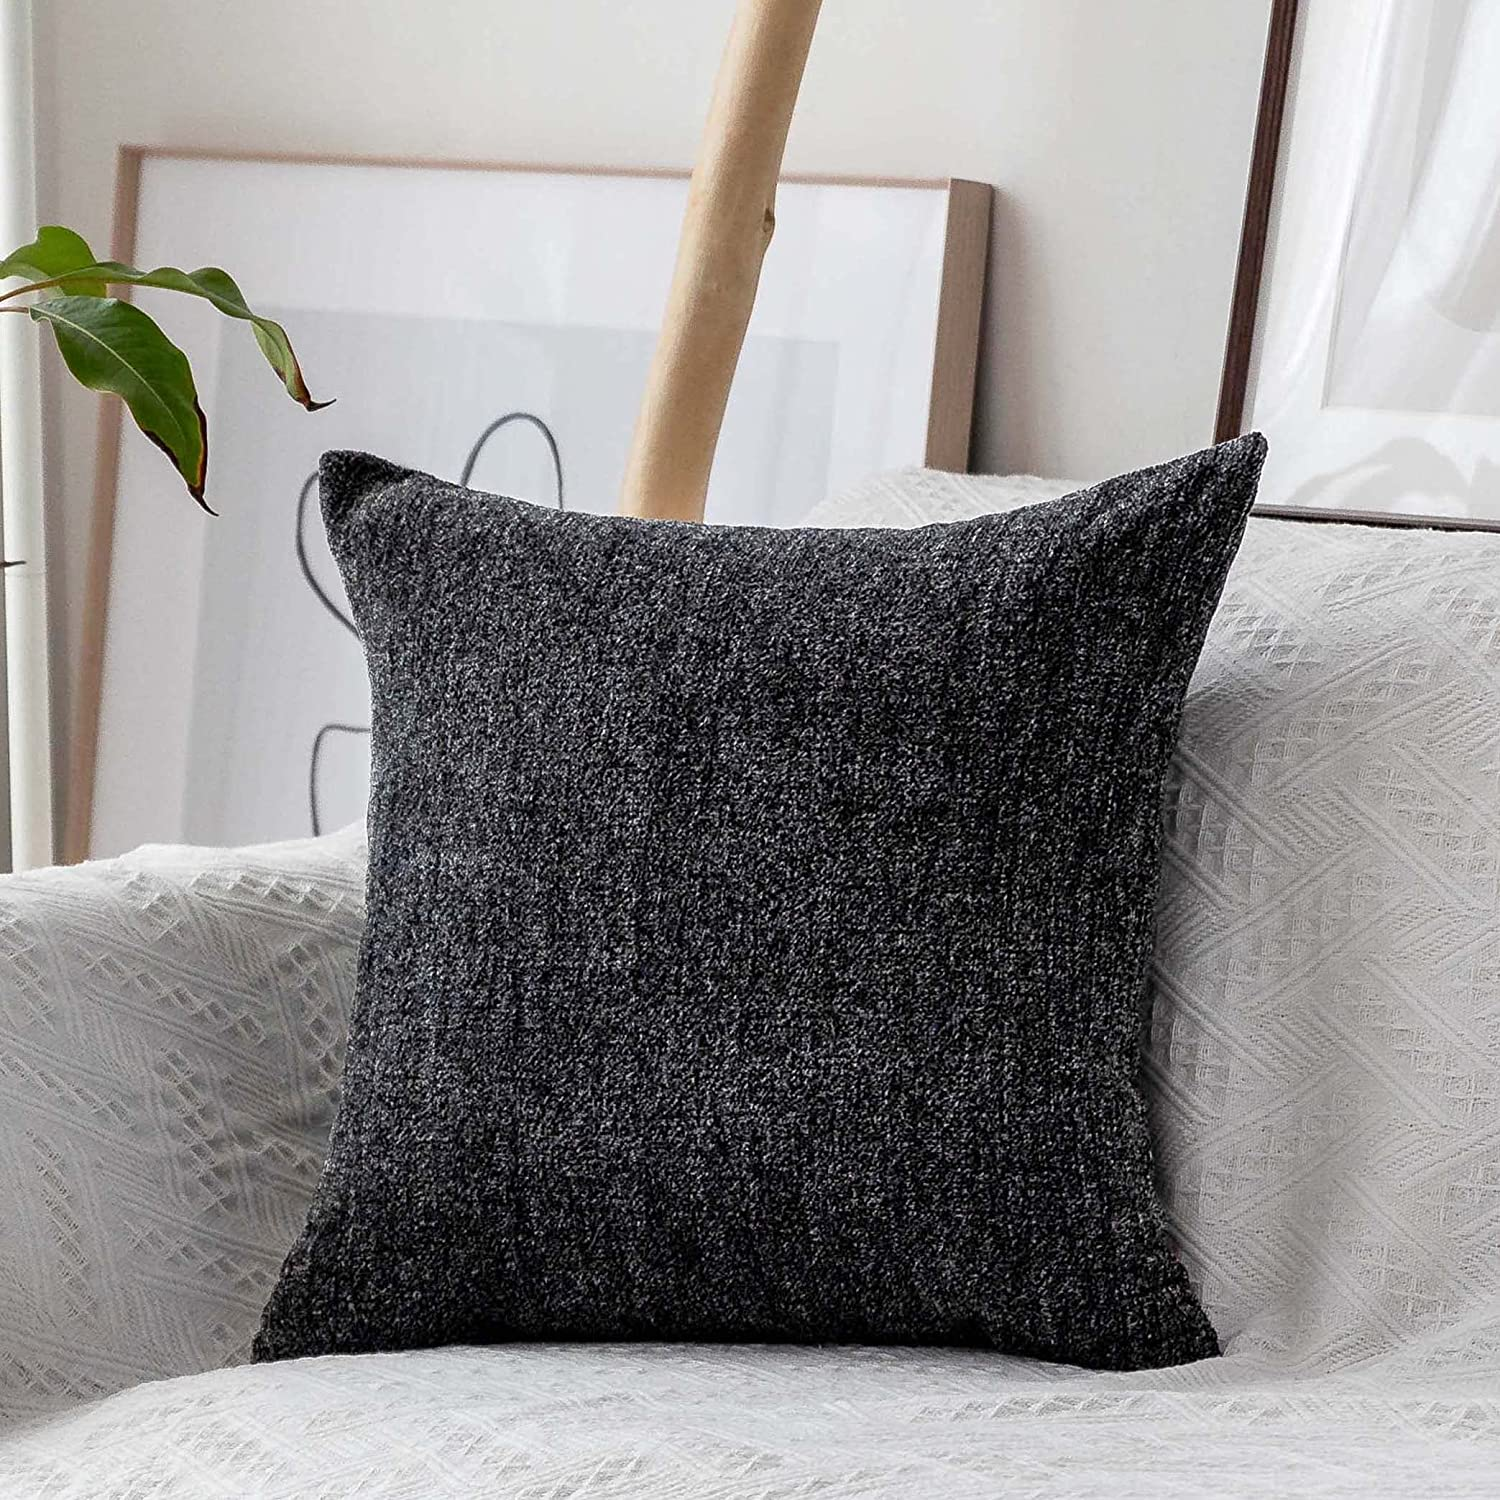 Home Brilliant Pillow Covers 26x26 Large Cushion Cover for Chair Striped Chenille Velvet Plush Euro Pillow Shams Protector, 66cm, Dark Grey